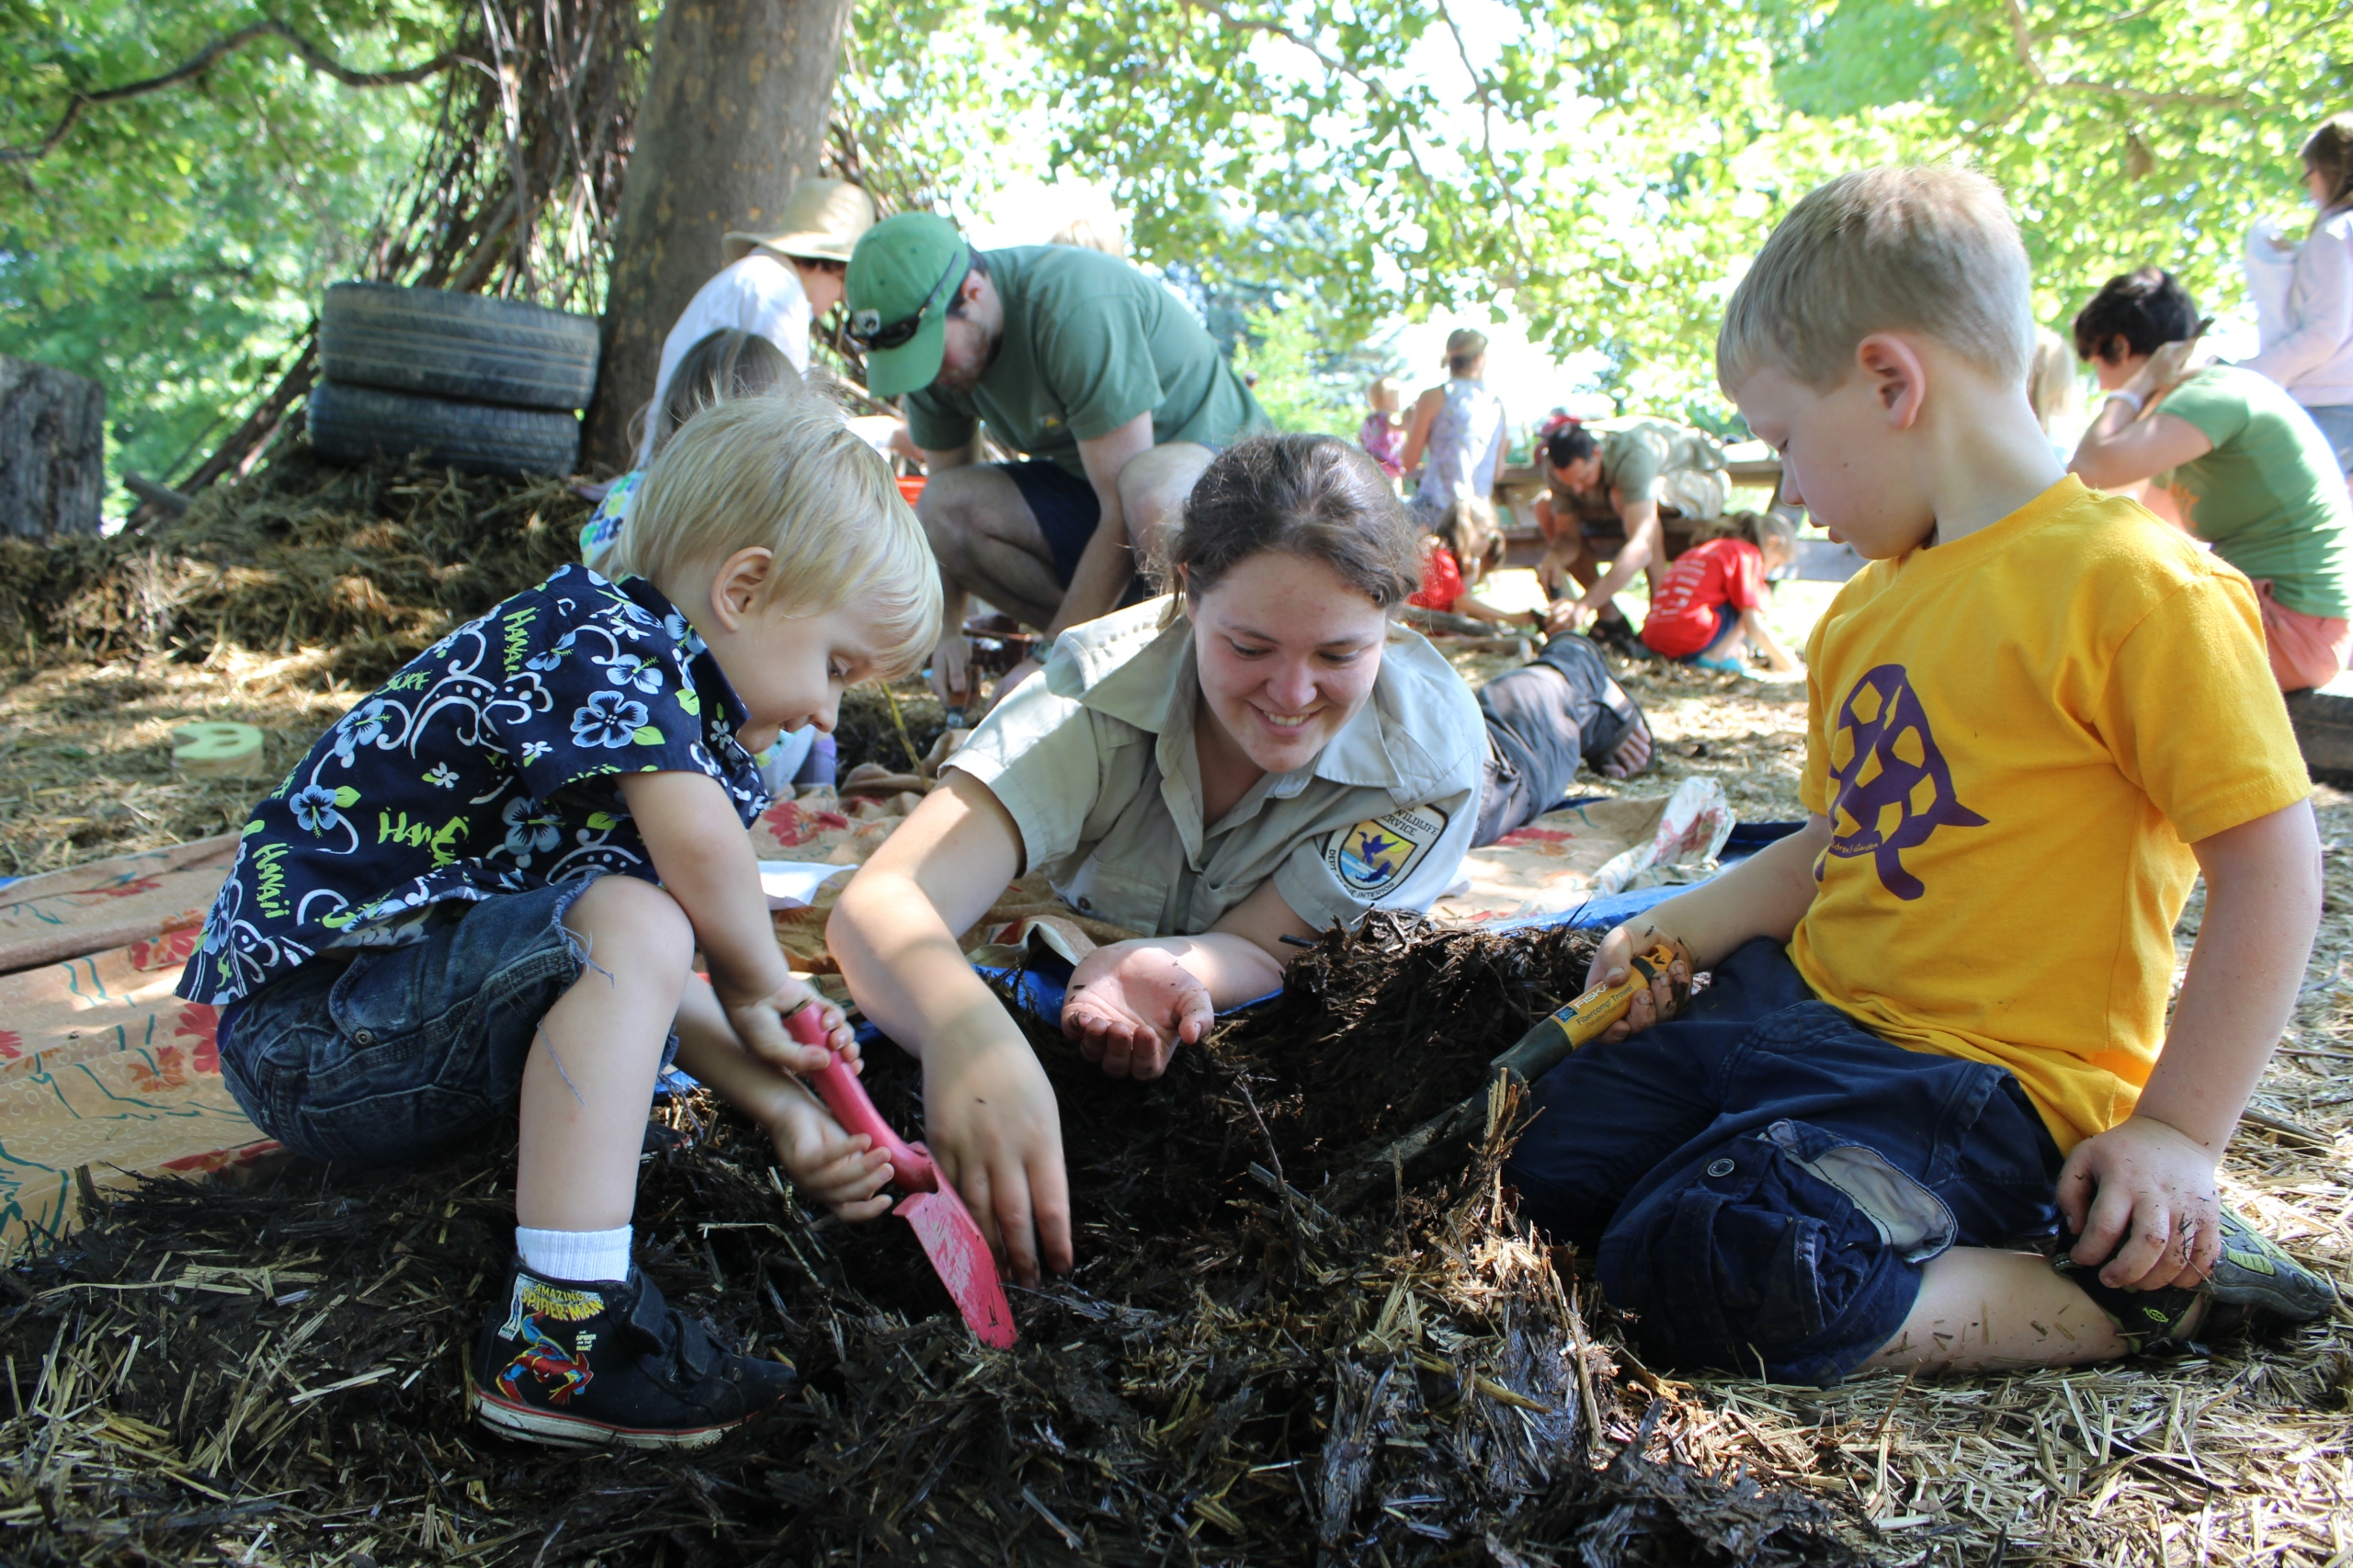 Andrea has been the outreach coordinator in our New York office. Here she and children explore for worms, insects, amphibians, and birds at the Hands-on-Nature Anarchy Zone during Zone into Nature, a program series that Andrea organized and facilitated.